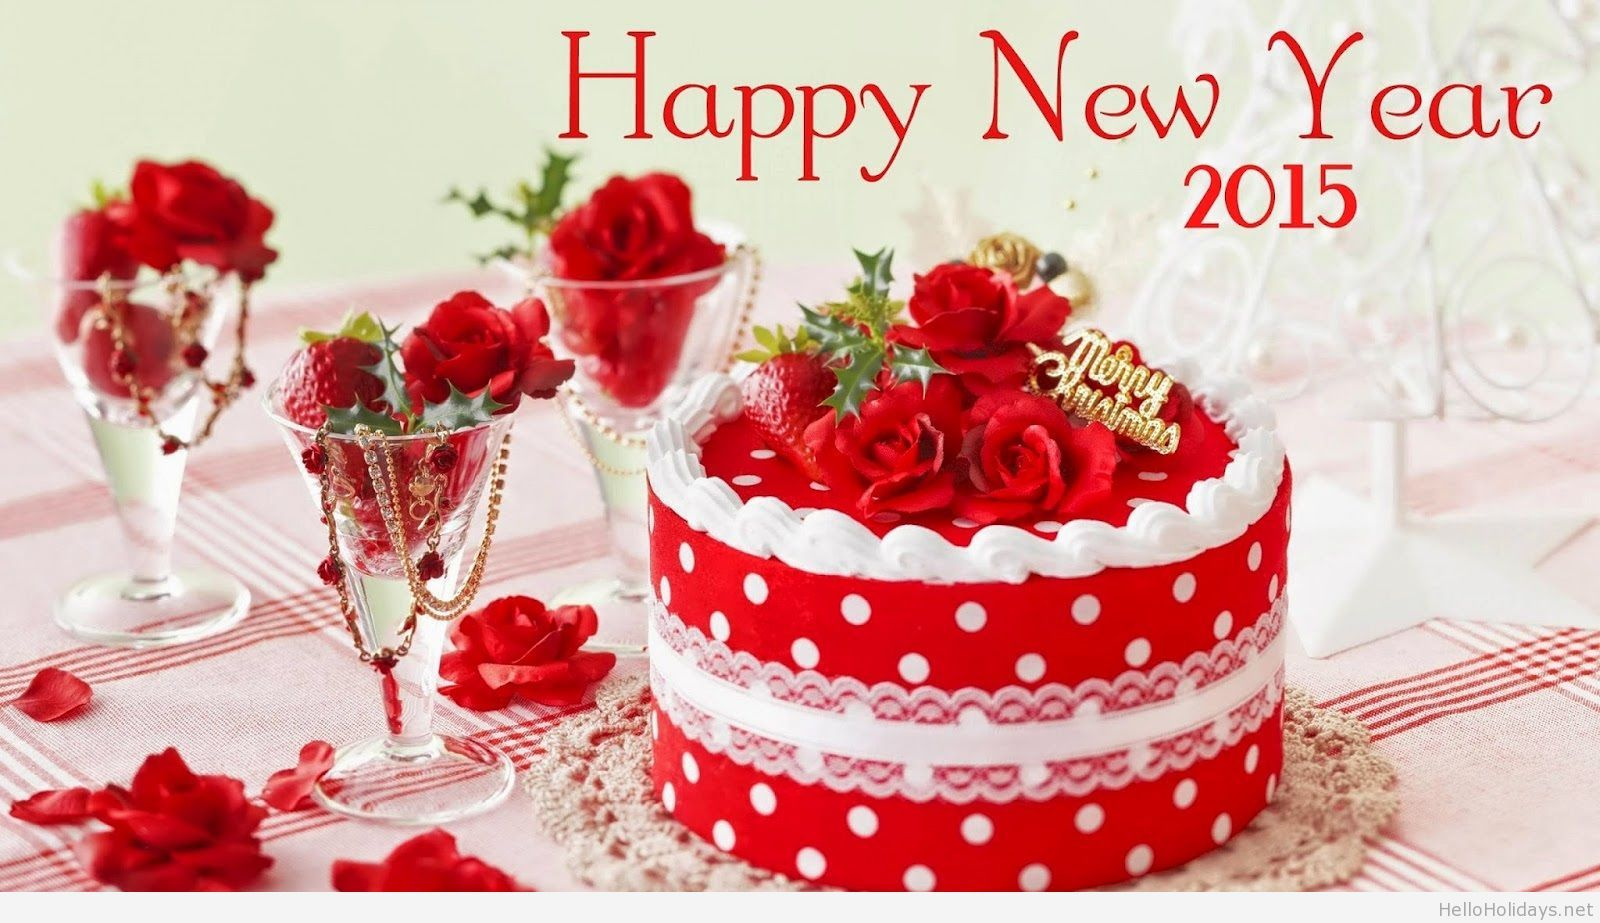 Happy New Year 2015 Party Background Voeux Pinterest Party